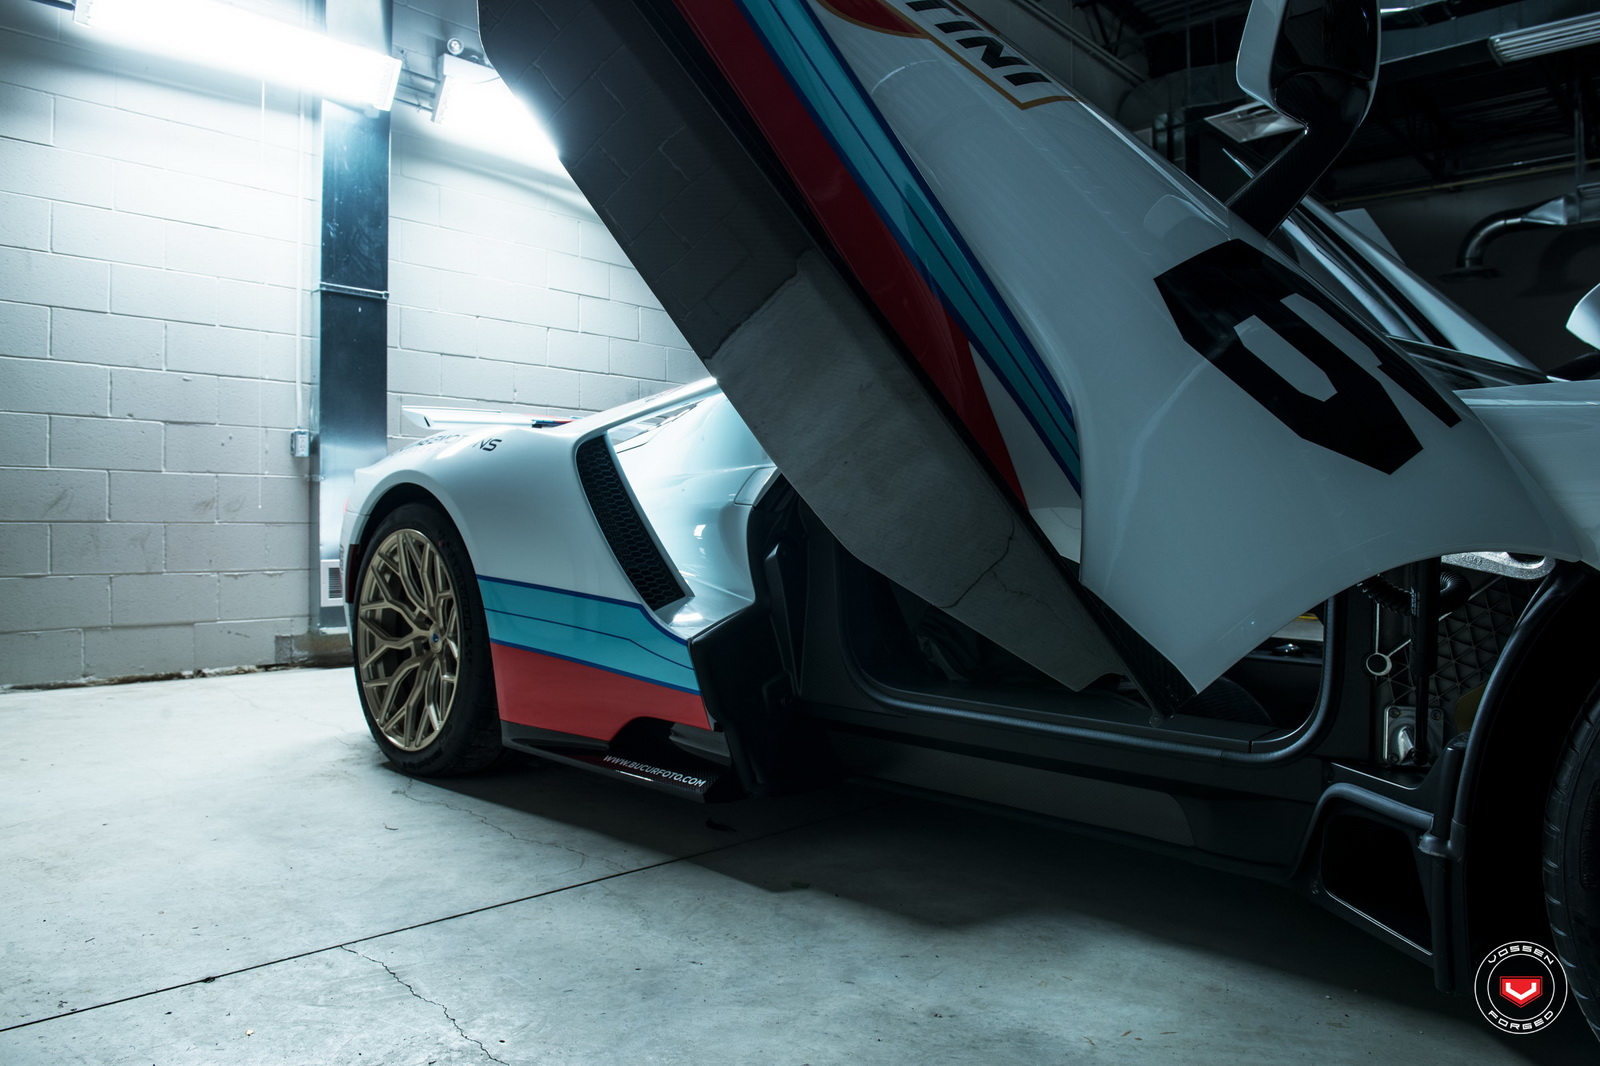 ford-gt-martini-livery-vossen-wheels-21